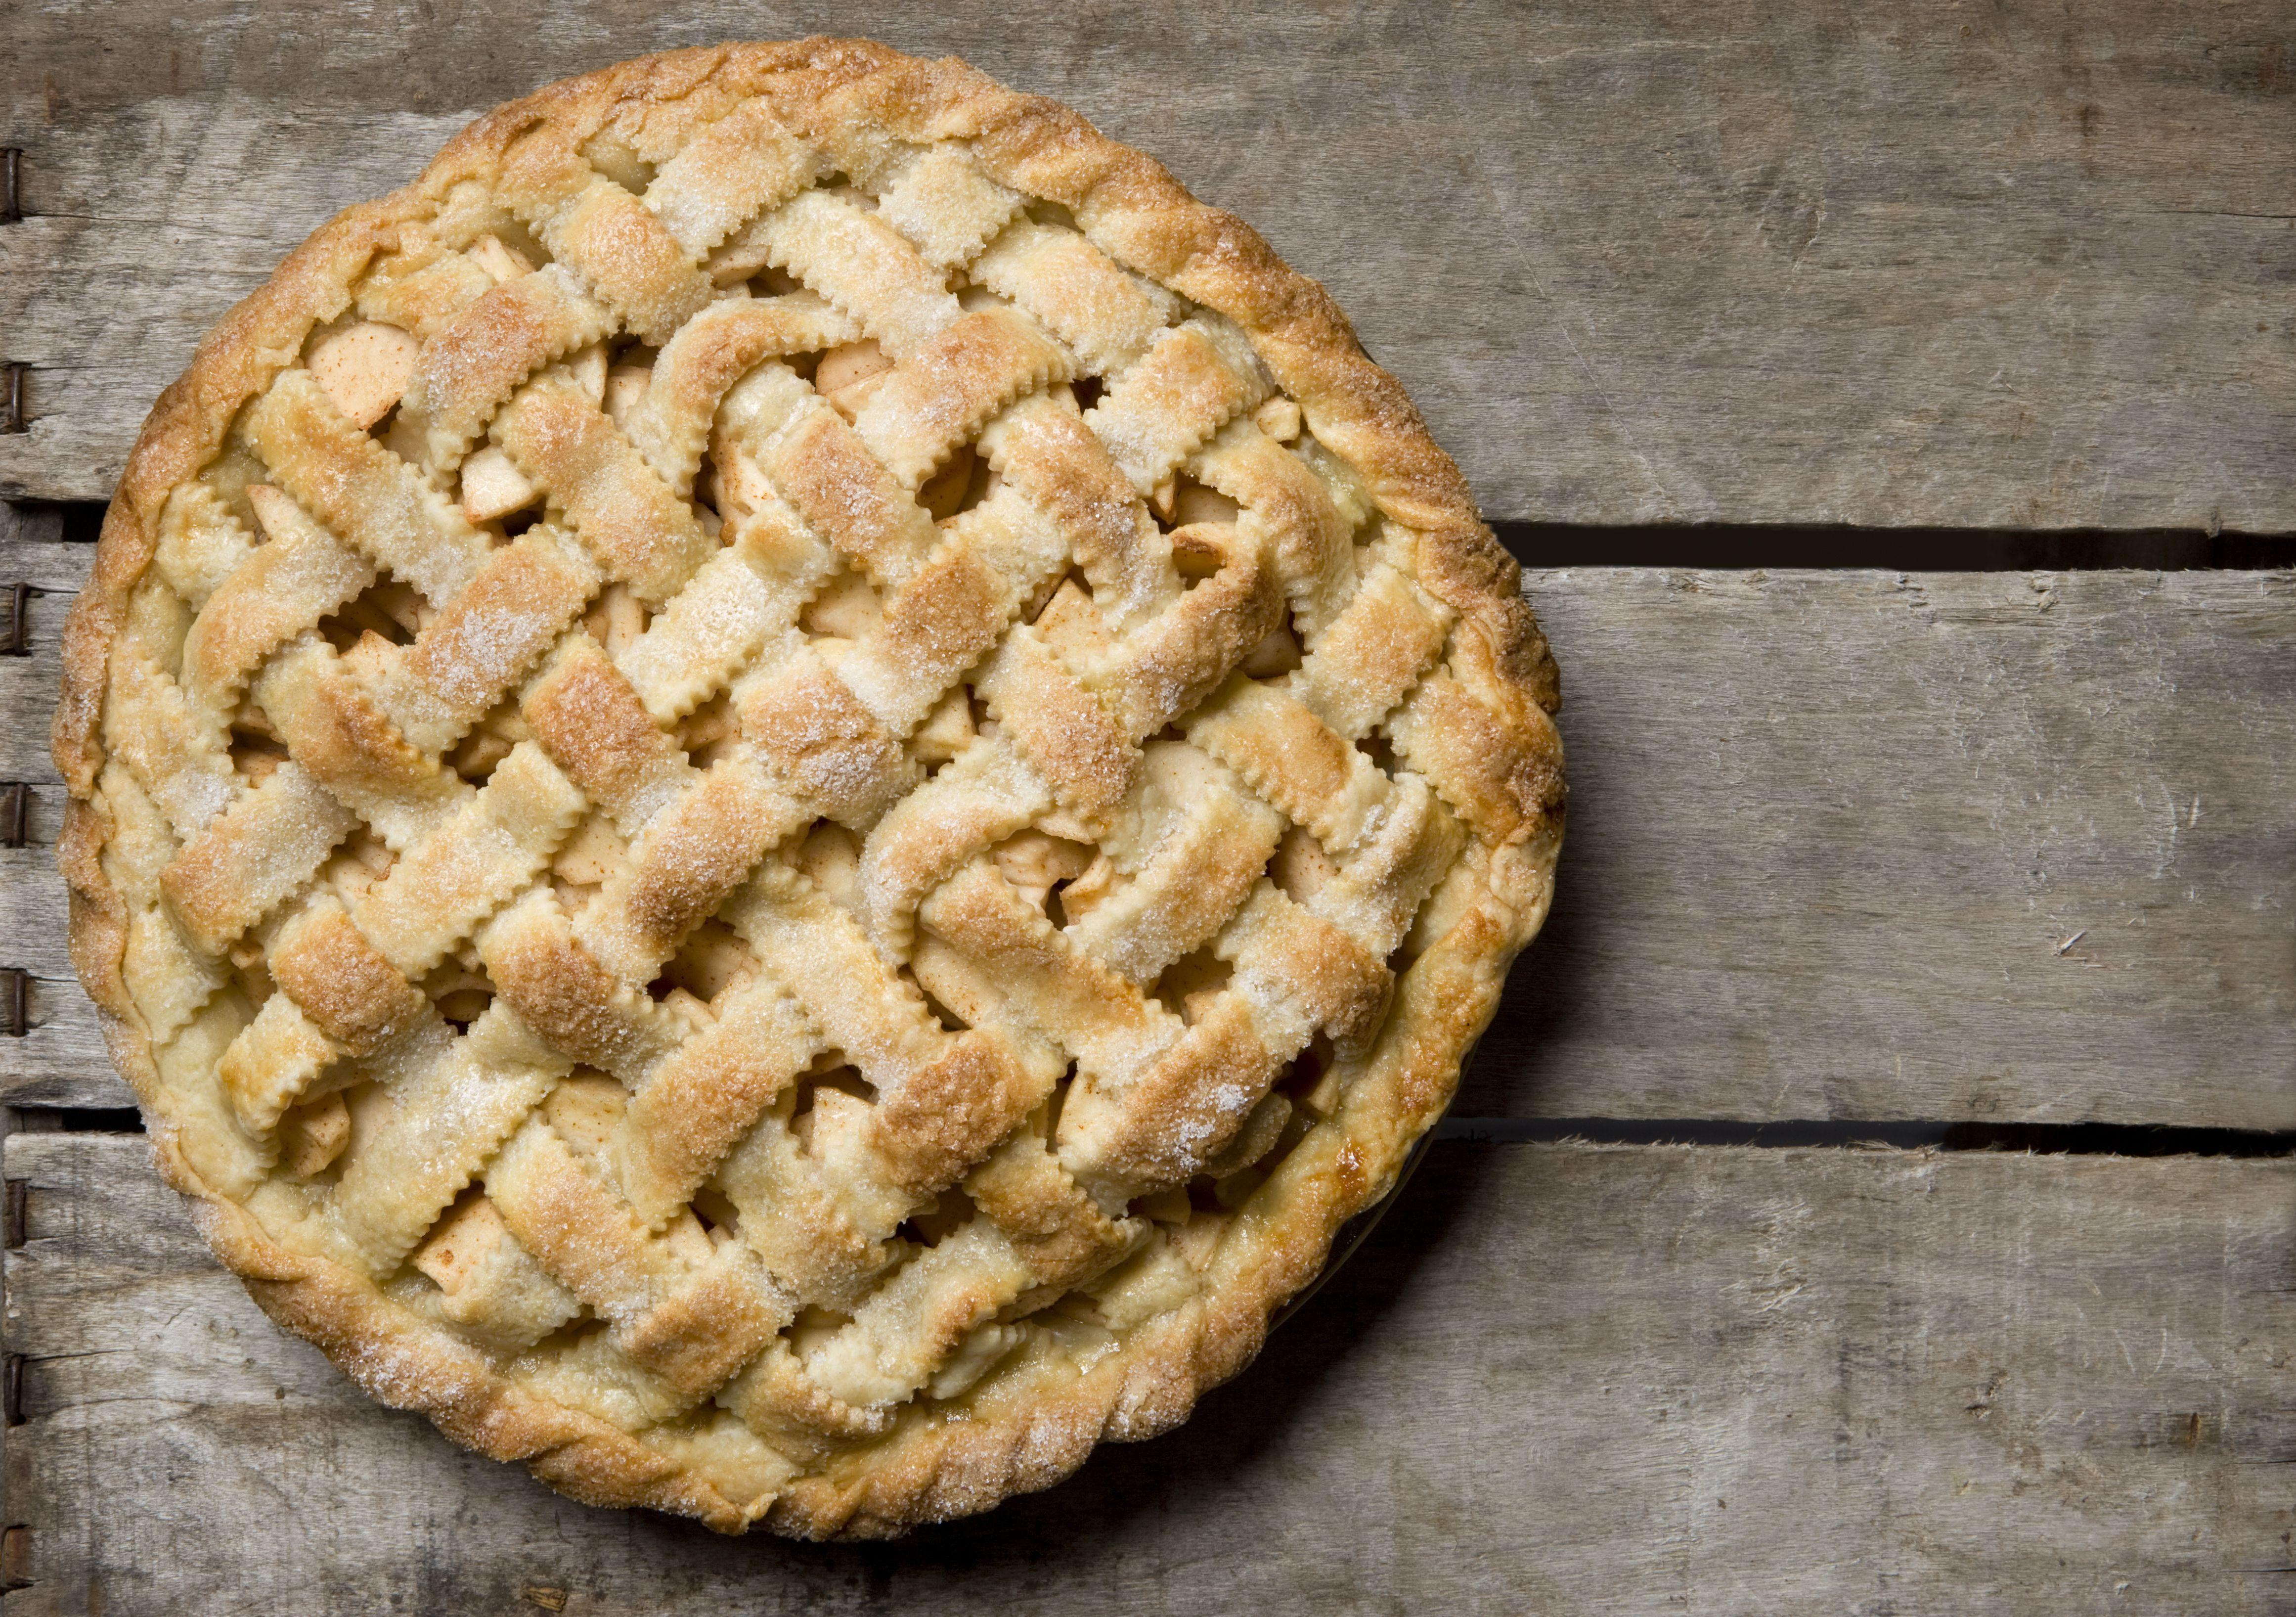 Tips For Crimping Pie Crust Edges Perfectly